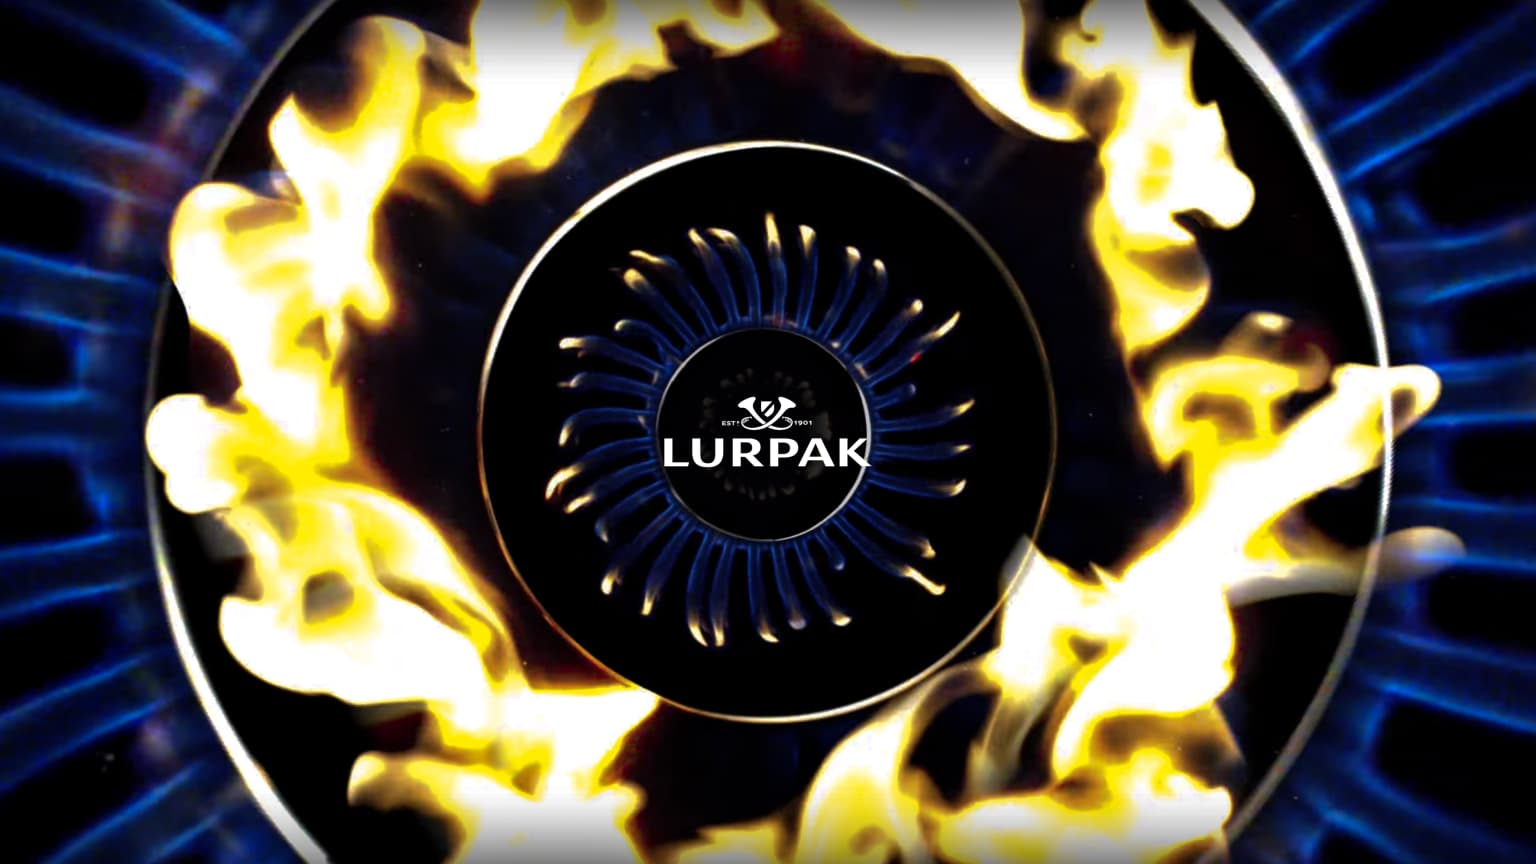 Lurpak 'Freestyle'